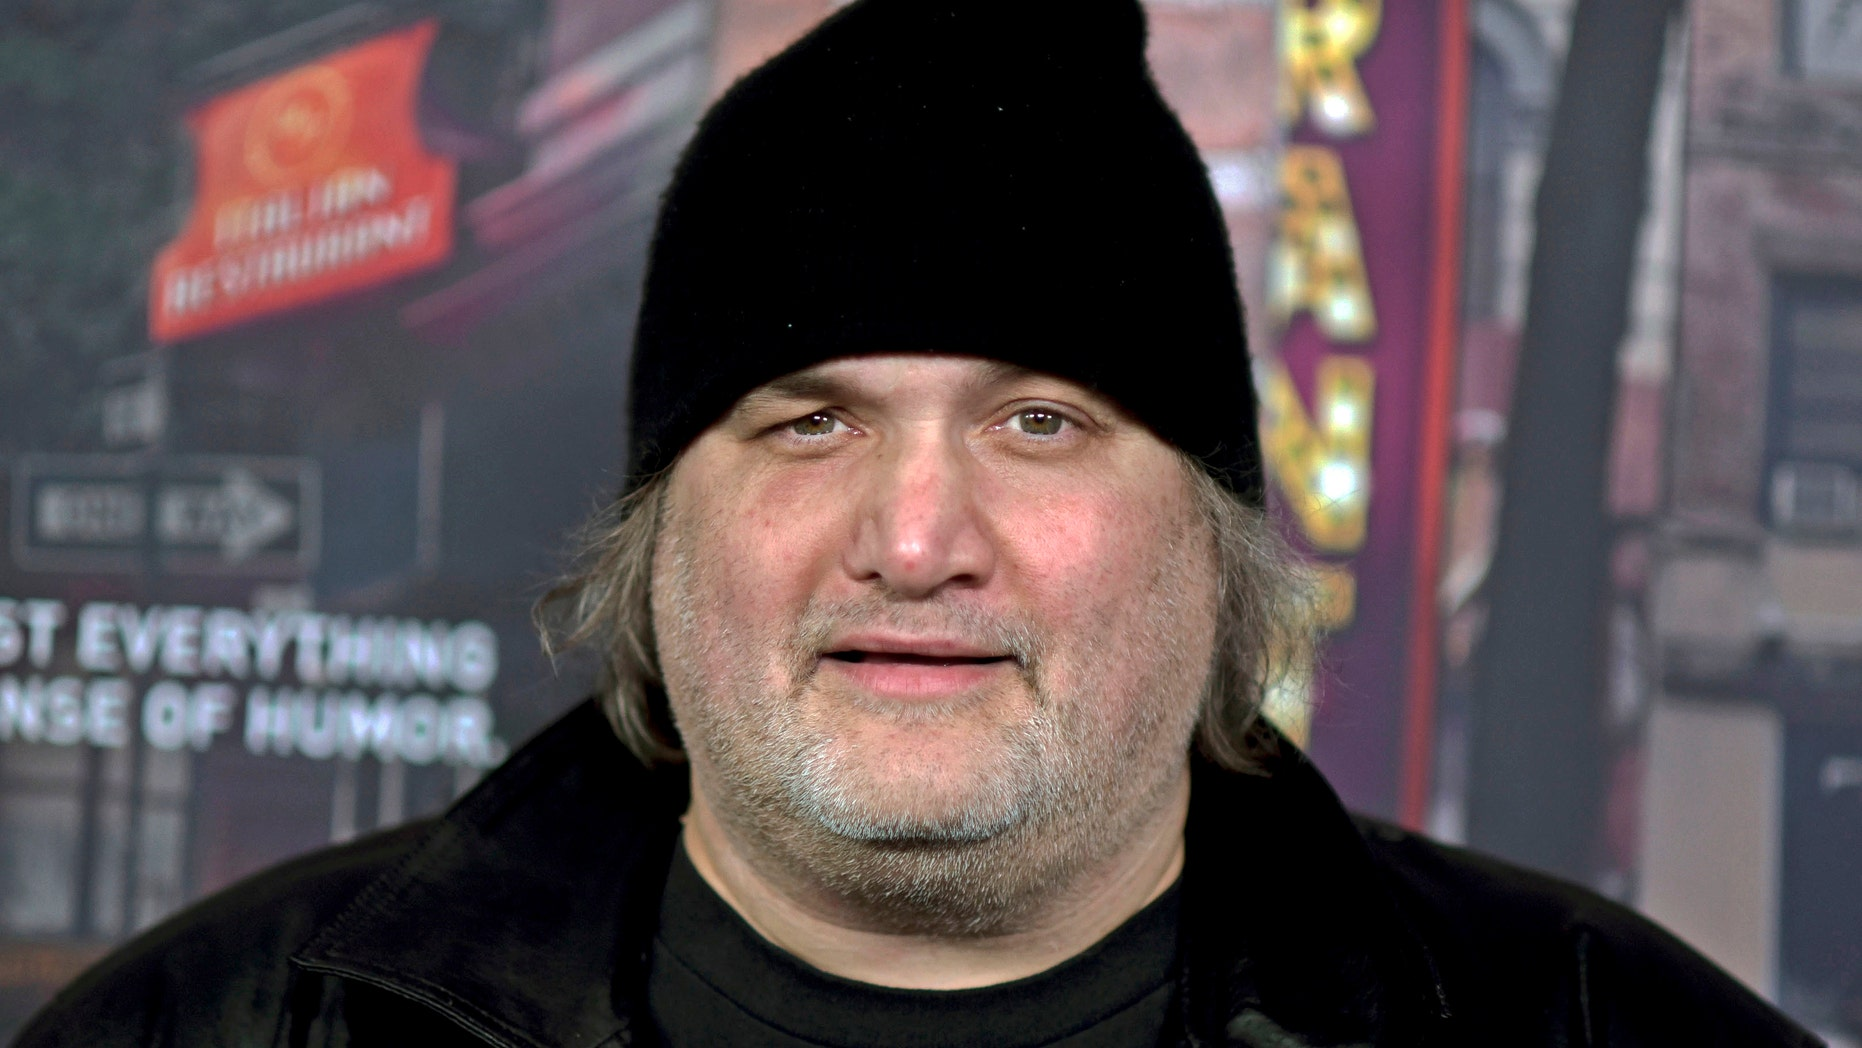 """FILE – In this Feb. 15, 2017, file photo, comedian Artie Lange attends a premiere for HBO's television comedy series """"Crashing,"""" in Los Angeles. A judge has spared comedian Artie Lange jail time even though he tested positive for cocaine and amphetamine."""